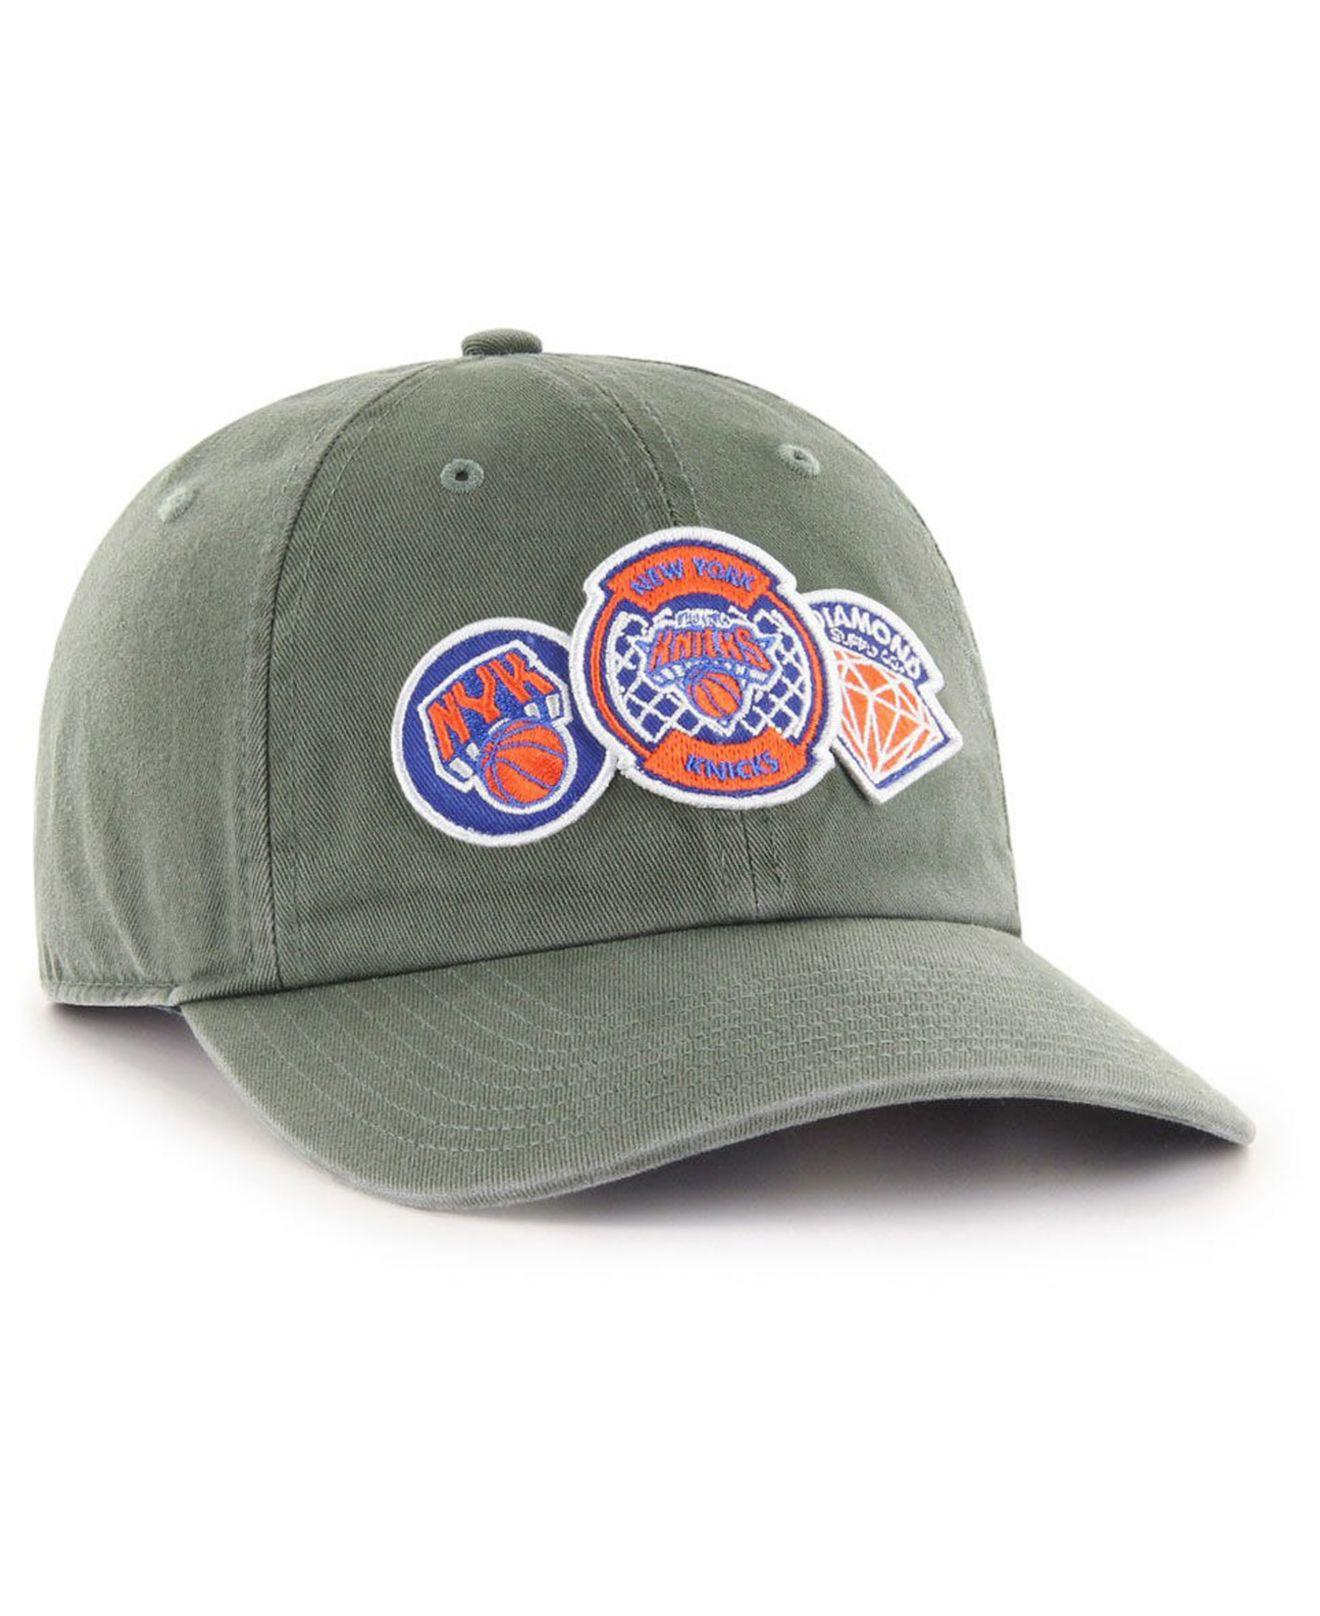 0a0f0ad1d5e125 47 Brand - Multicolor New York Knicks Diamond Patch Clean Up Mf Cap for Men  -. View fullscreen